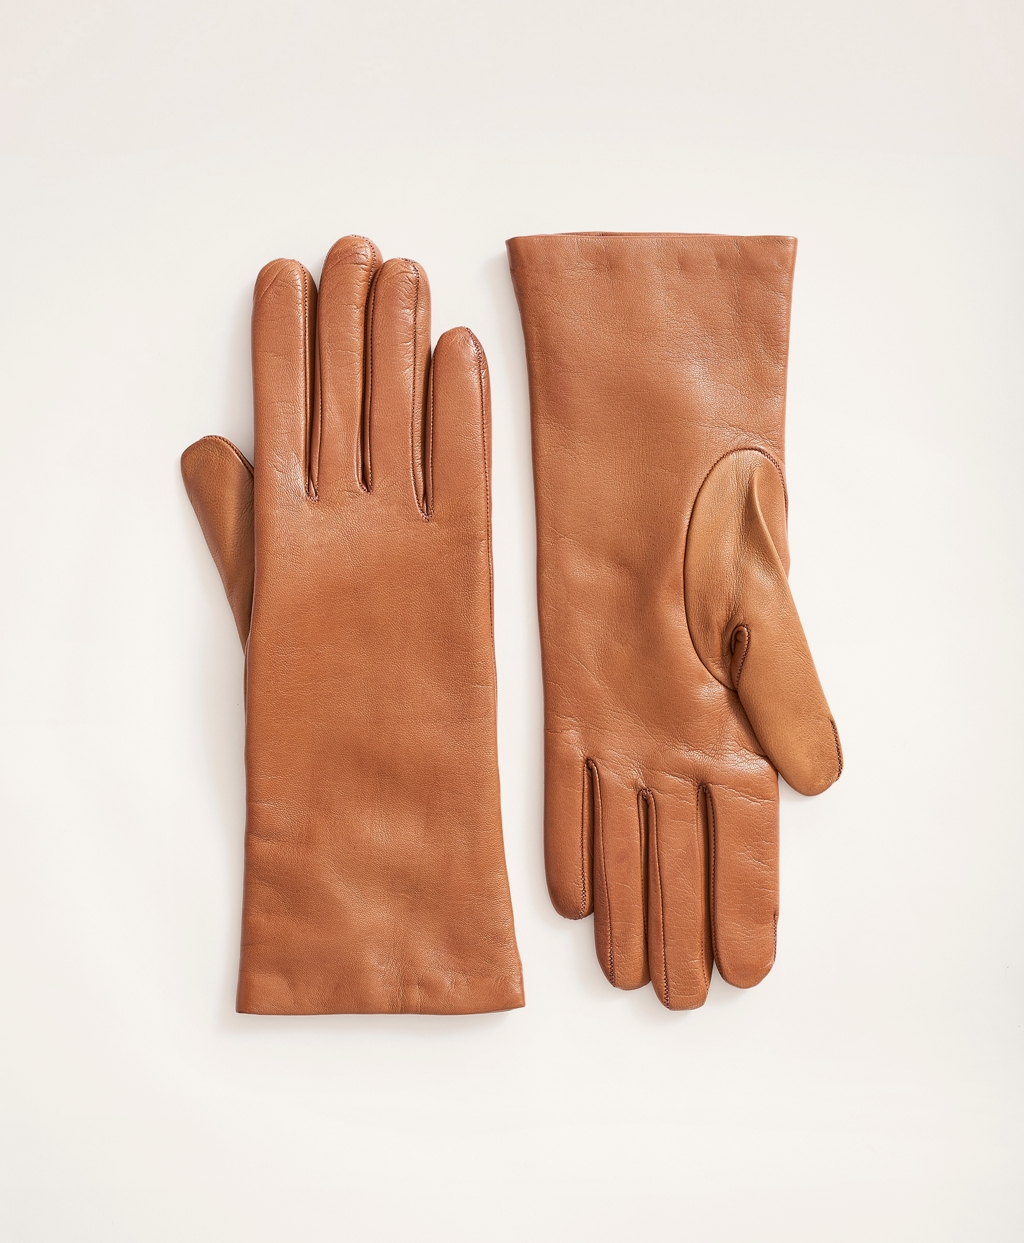 1940s Accessories: Belts, Gloves, Head Scarf Brooks Brothers Womens Cashmere Lined Leather Gloves $138.00 AT vintagedancer.com